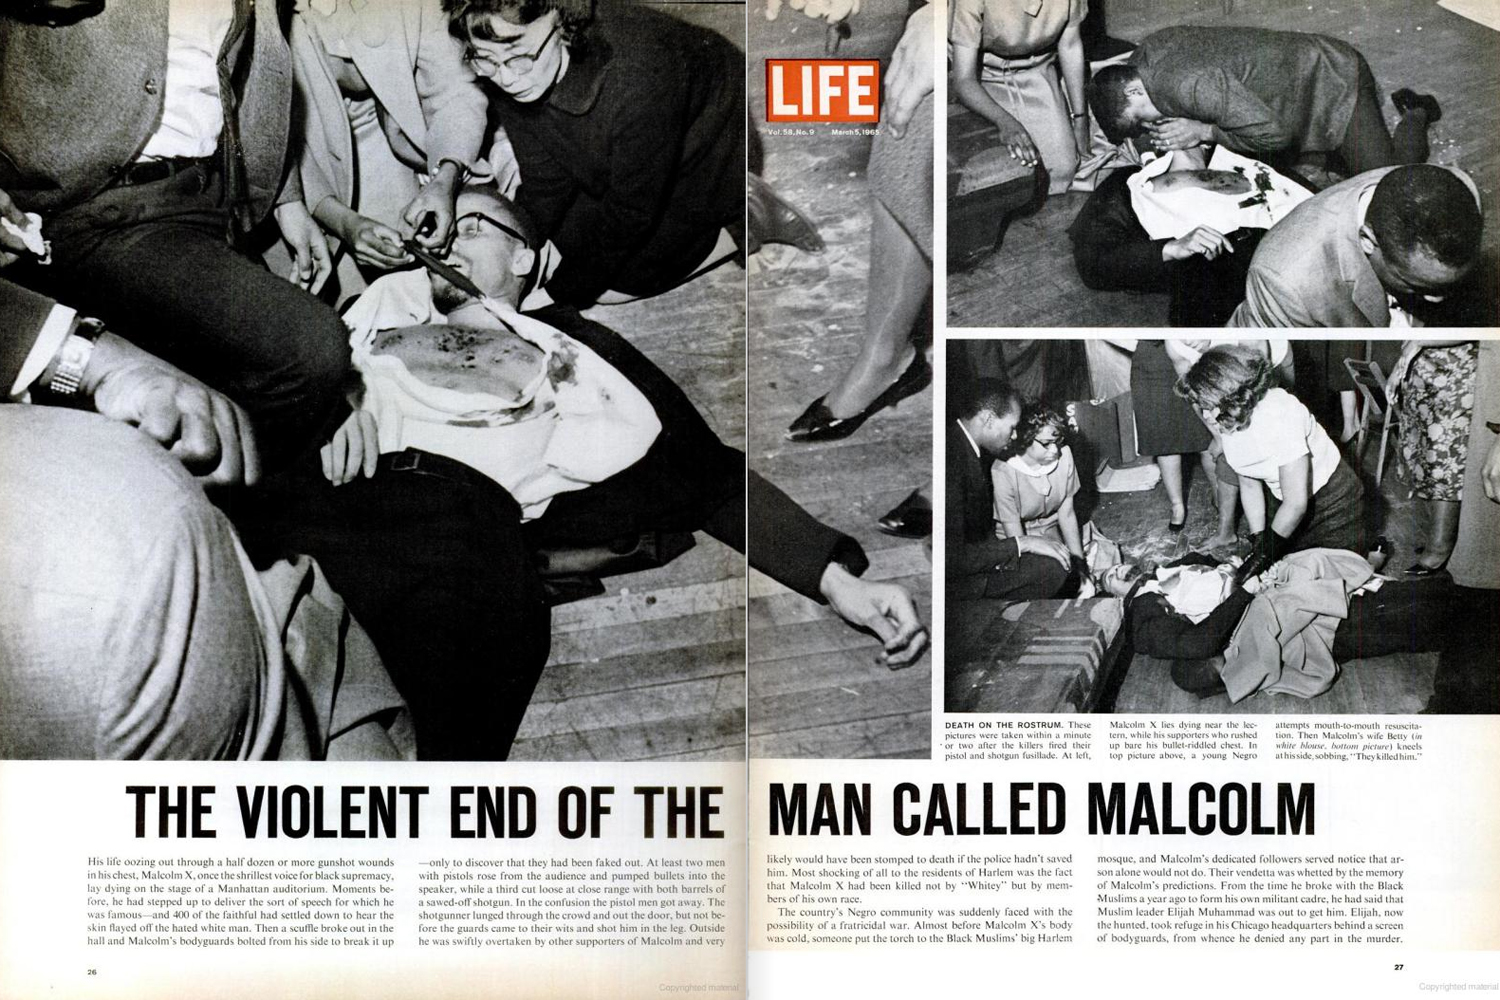 A photo by Malcolm X's close associate Earl Grant shows Yuri Kochiyama (above left, in glasses) cradling the fatally wounded human rights activist's head at the Audubon Ballroom in Harlem, Feb. 21, 1965.